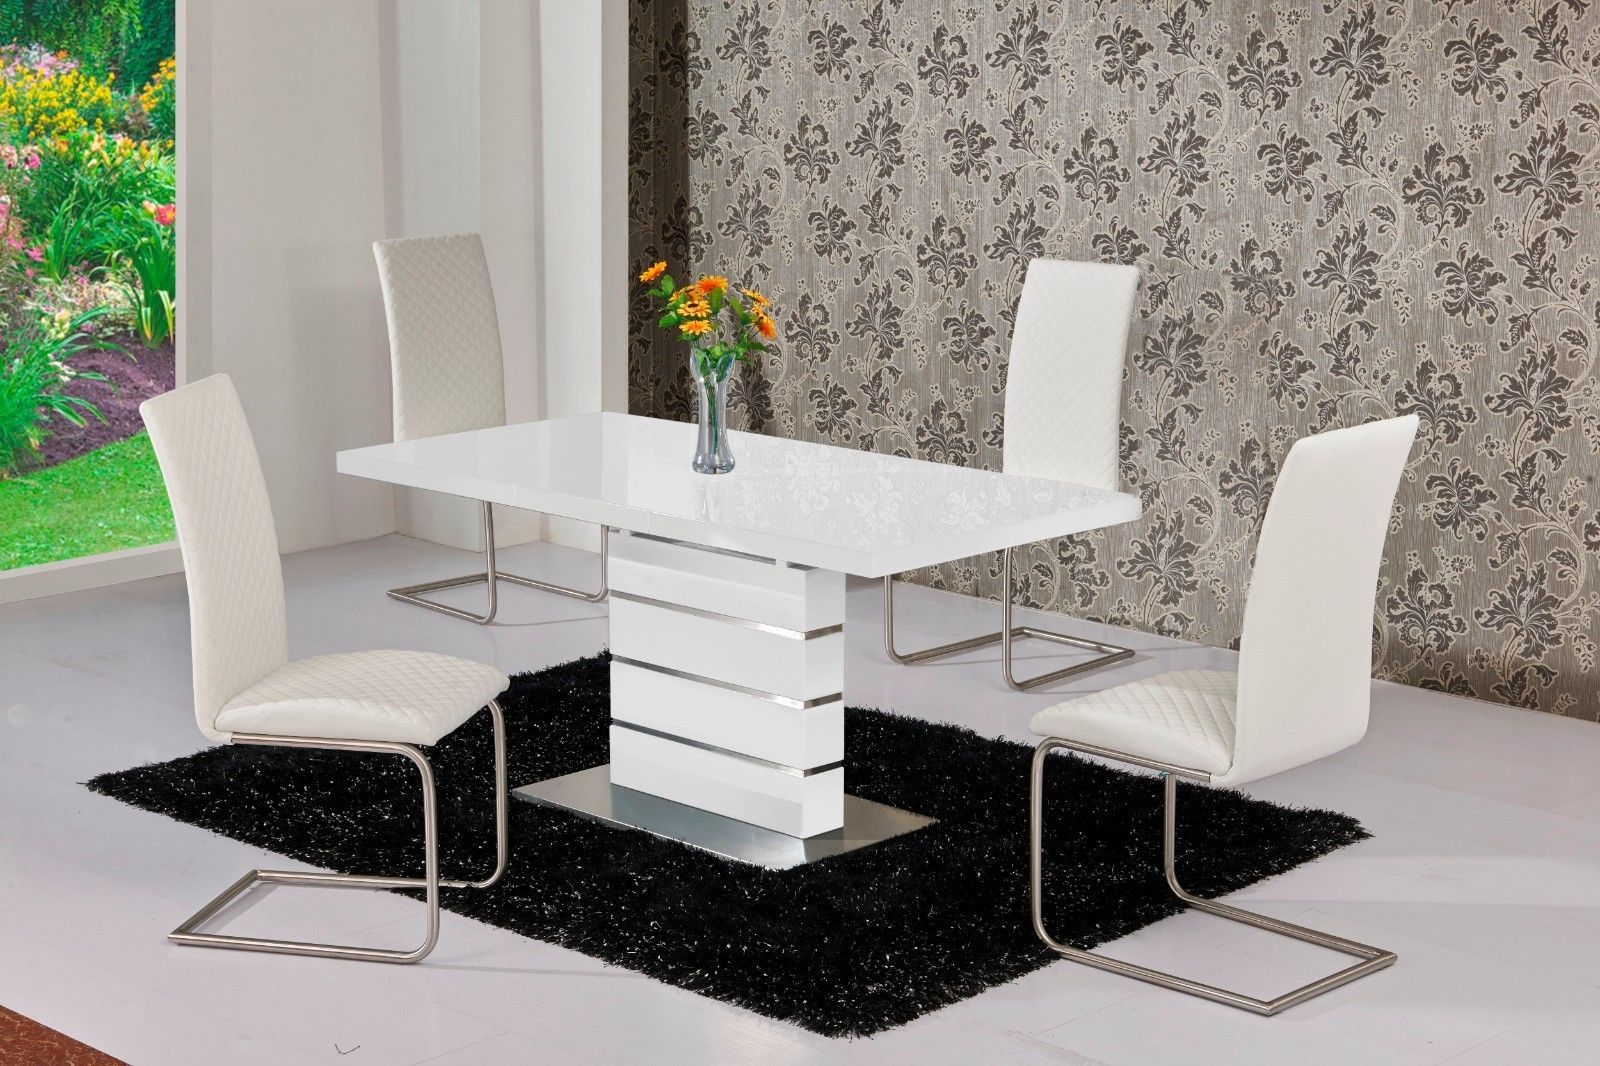 MACE High Gloss Extending 120 160 Dining Table Chair Set